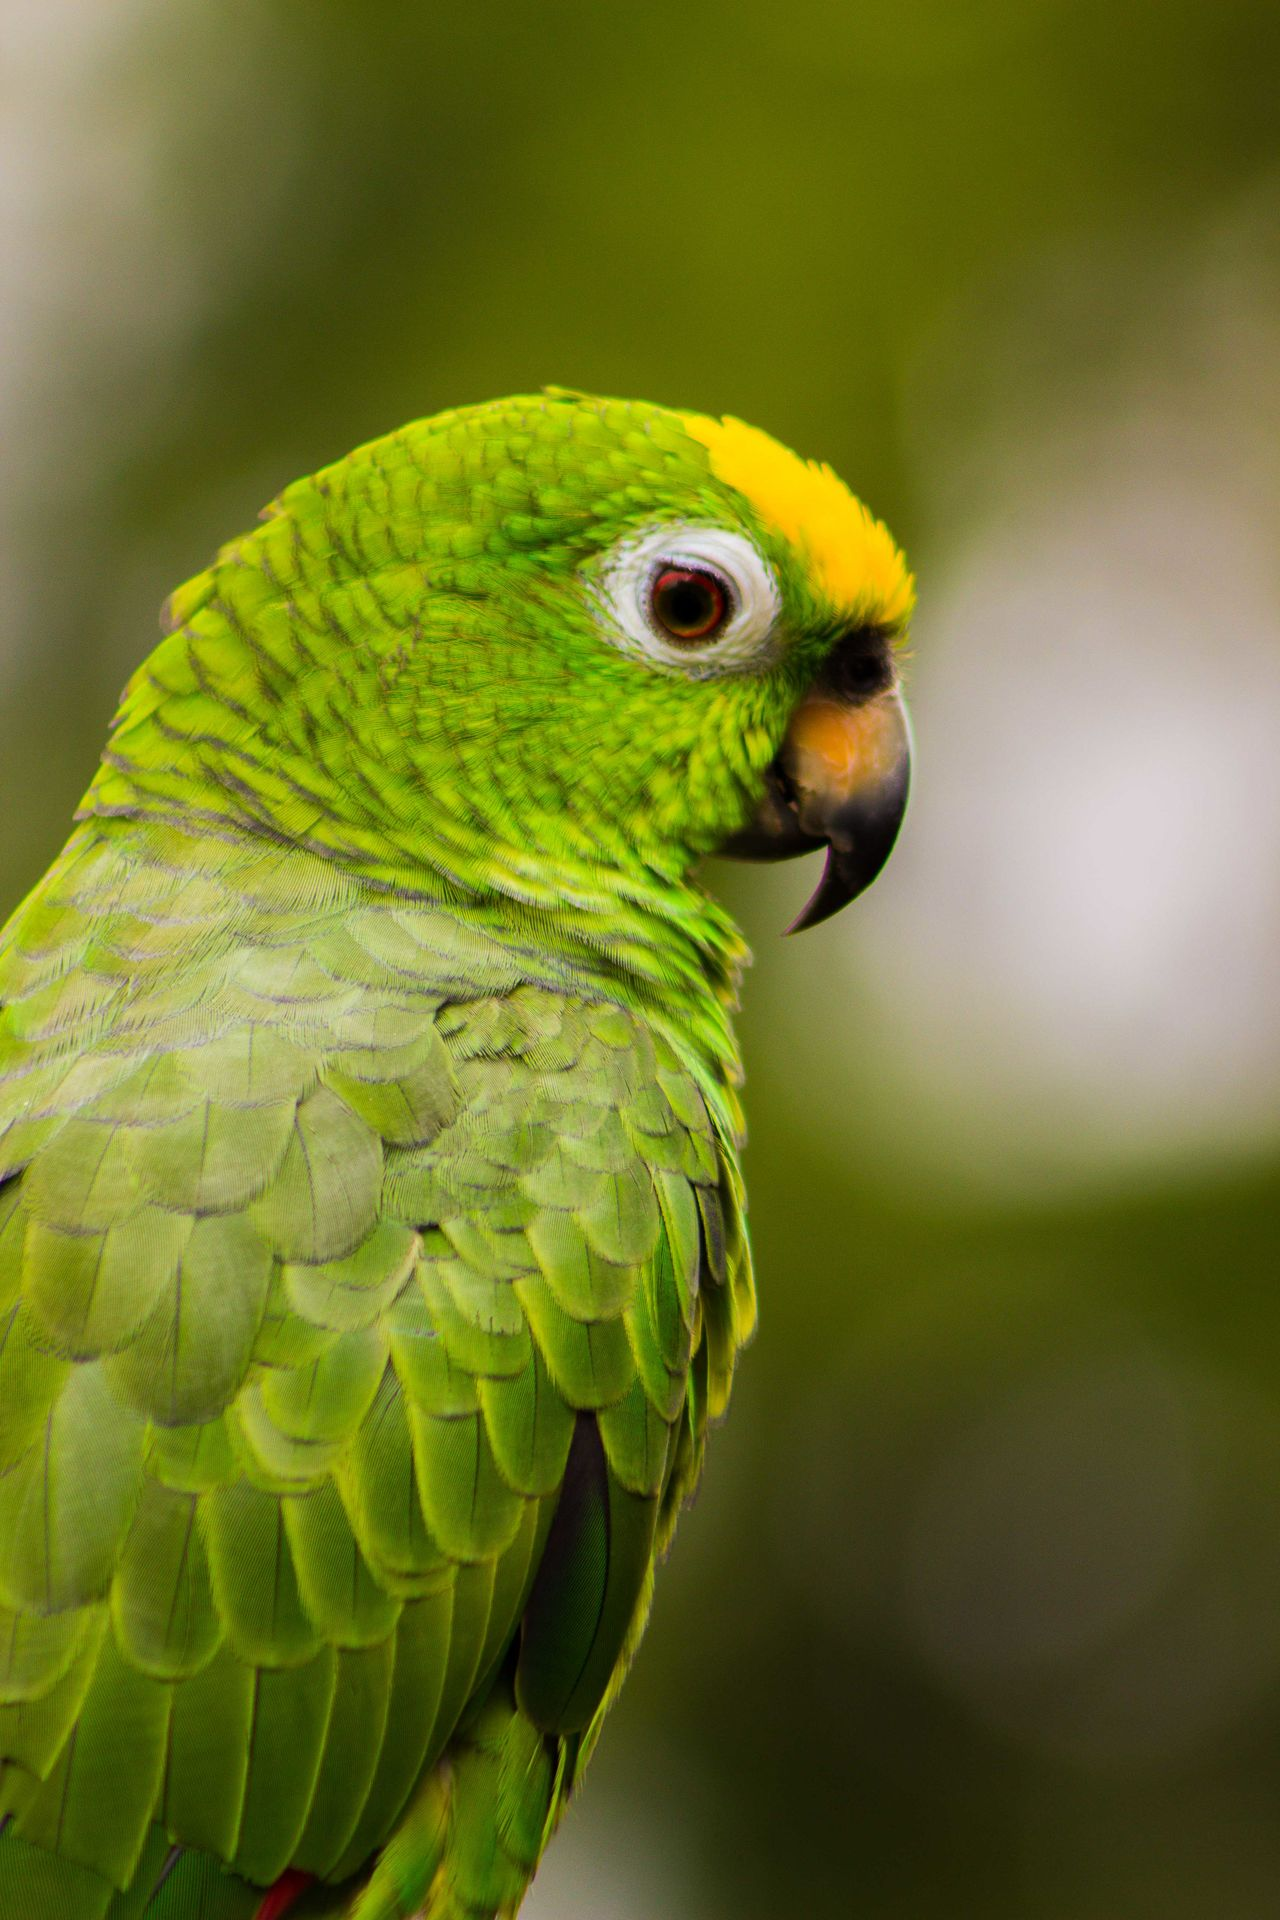 #bird #birds #Nature  Animal Themes Animal Wildlife Close-up Green Color One Animal Parrot First Eyeem Photo